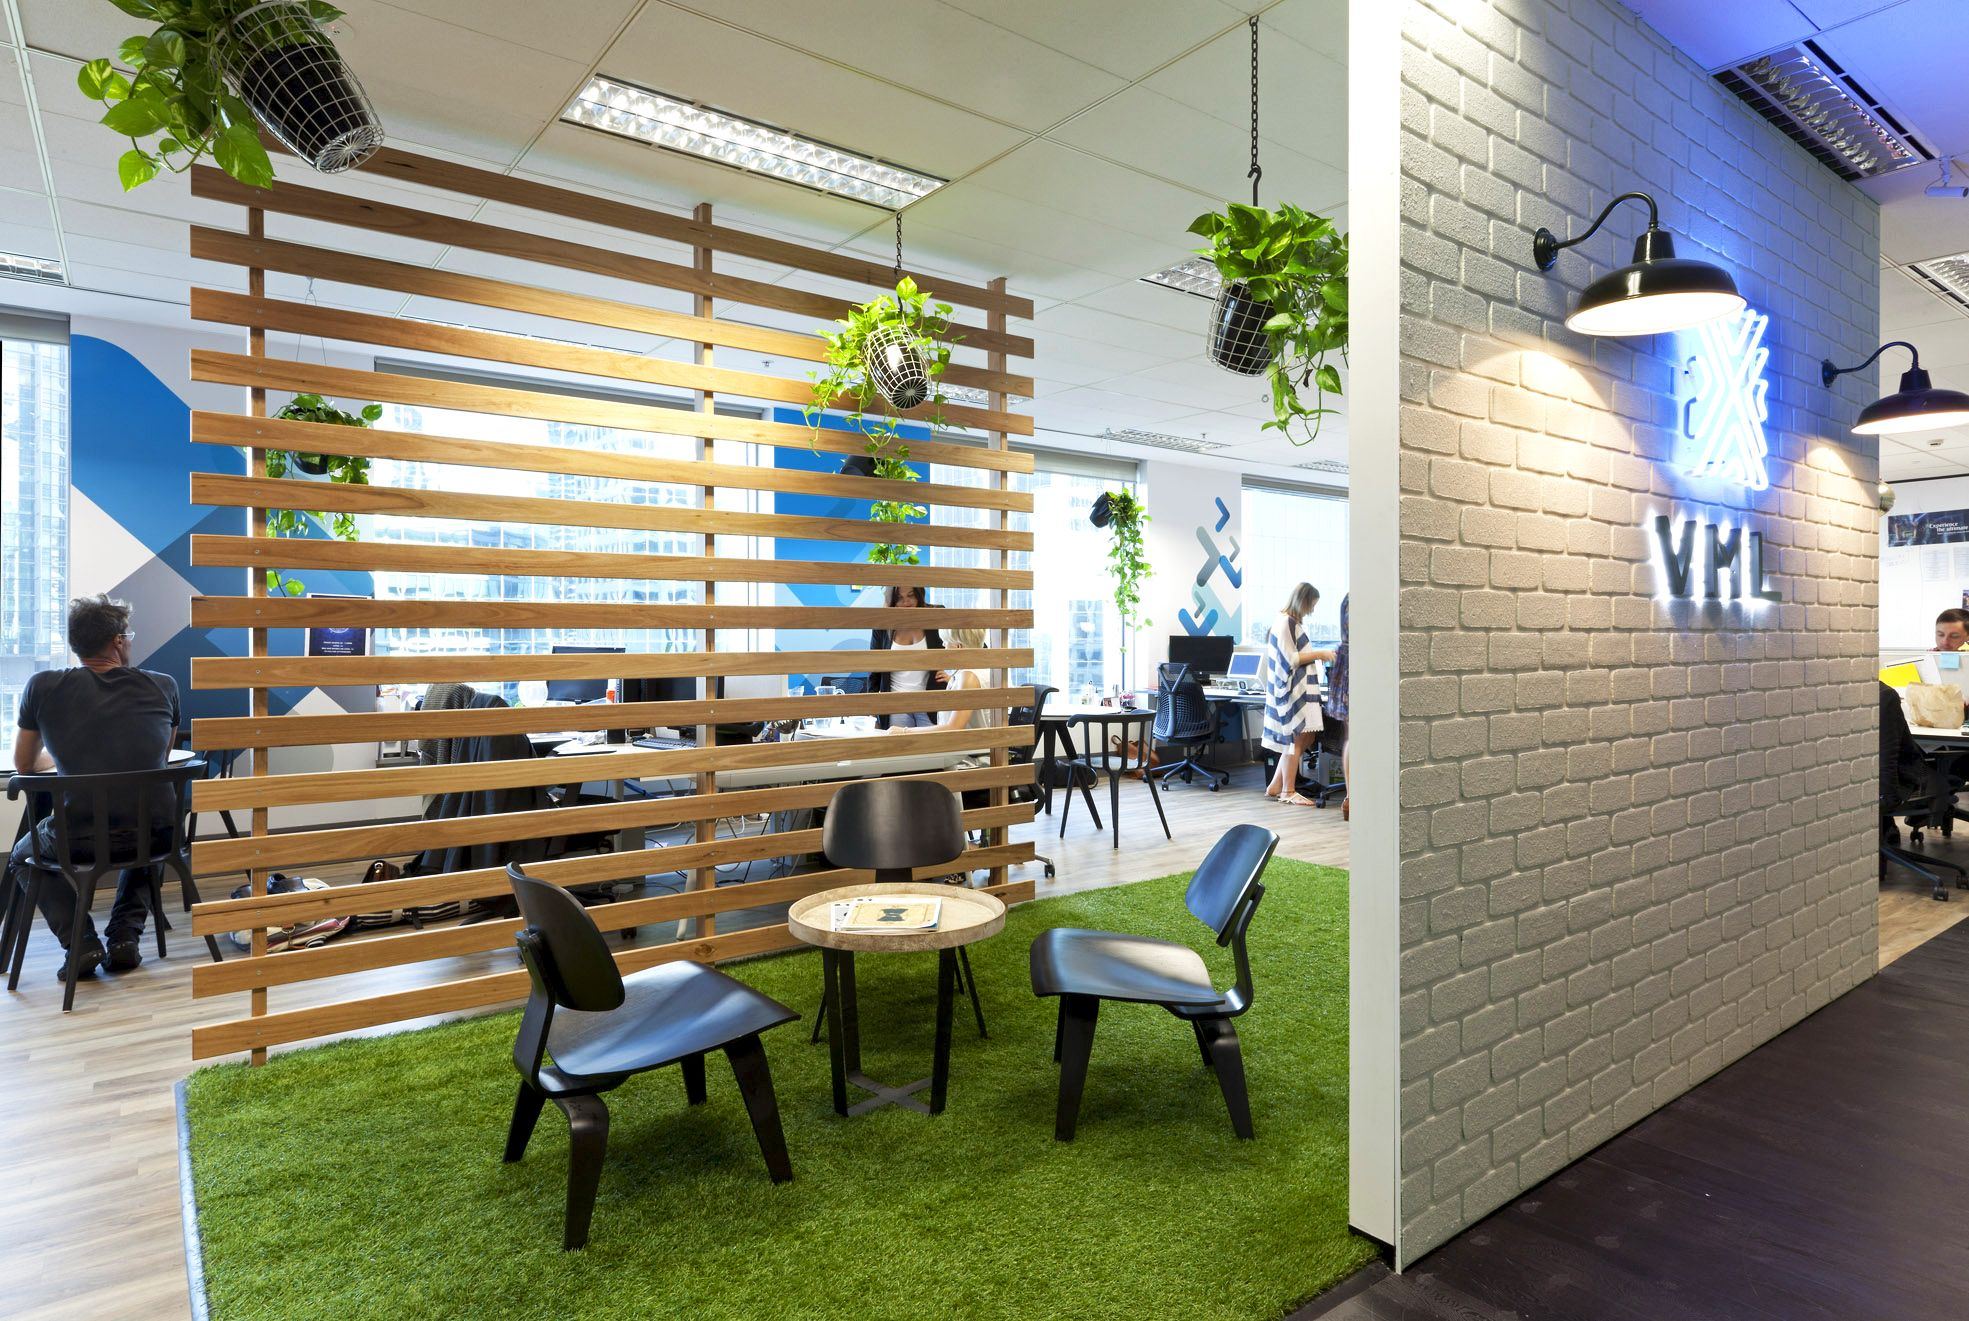 commercial office design office space. Y\u0026R Sydney Office - Nature Indoors Biophilic Design Commercial Space U